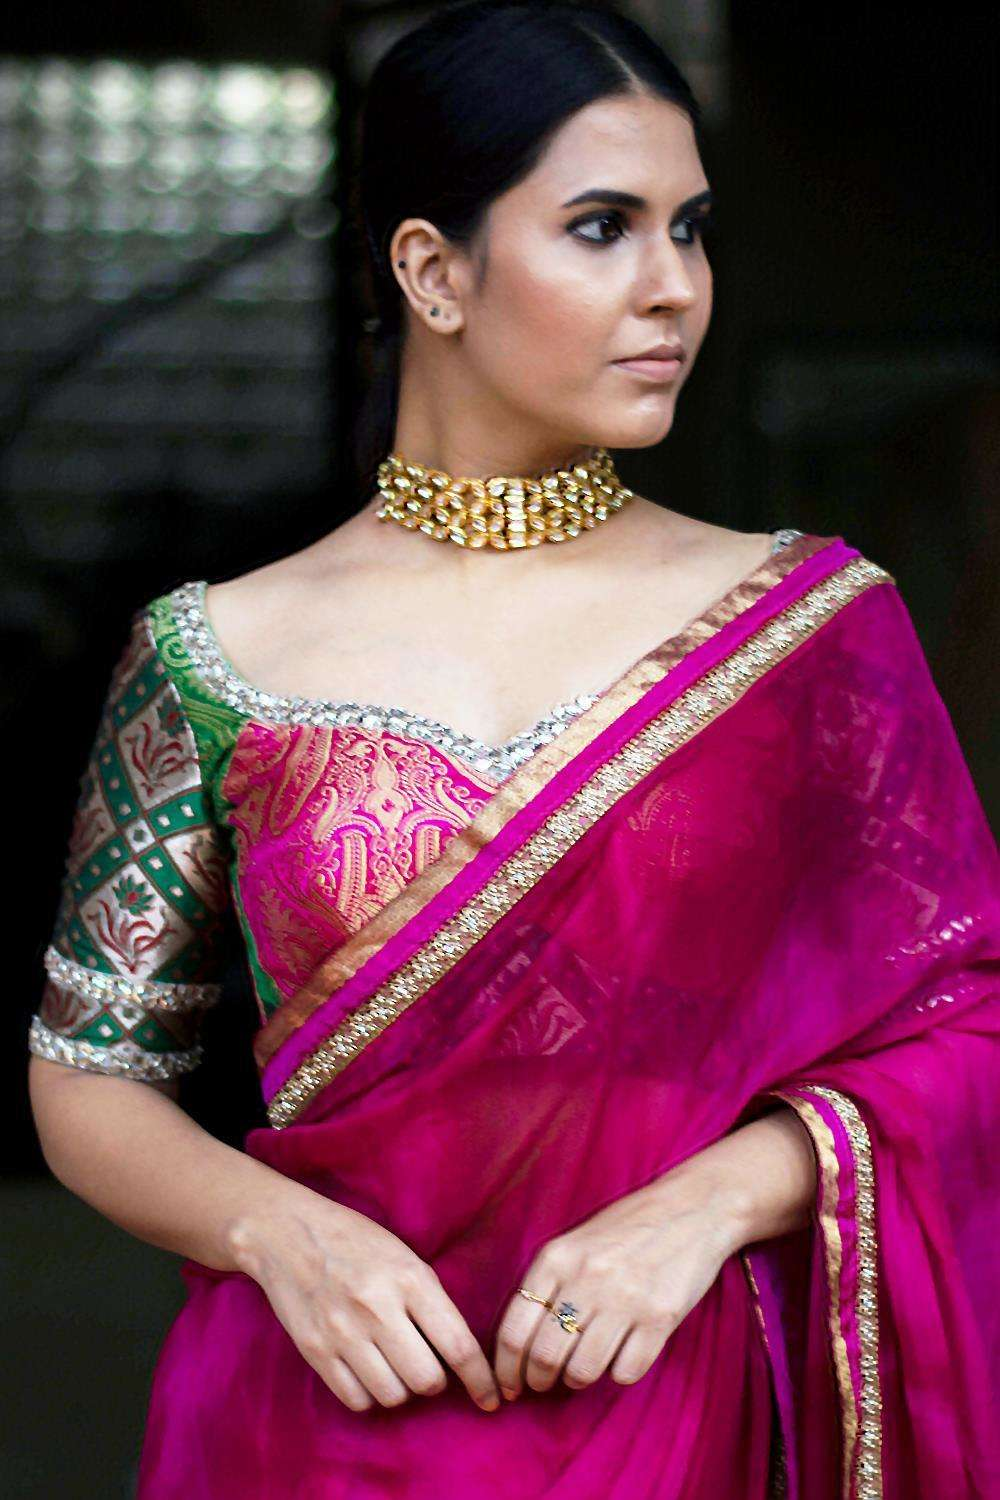 Patchwork blouse in pink and green brocade with kundan border